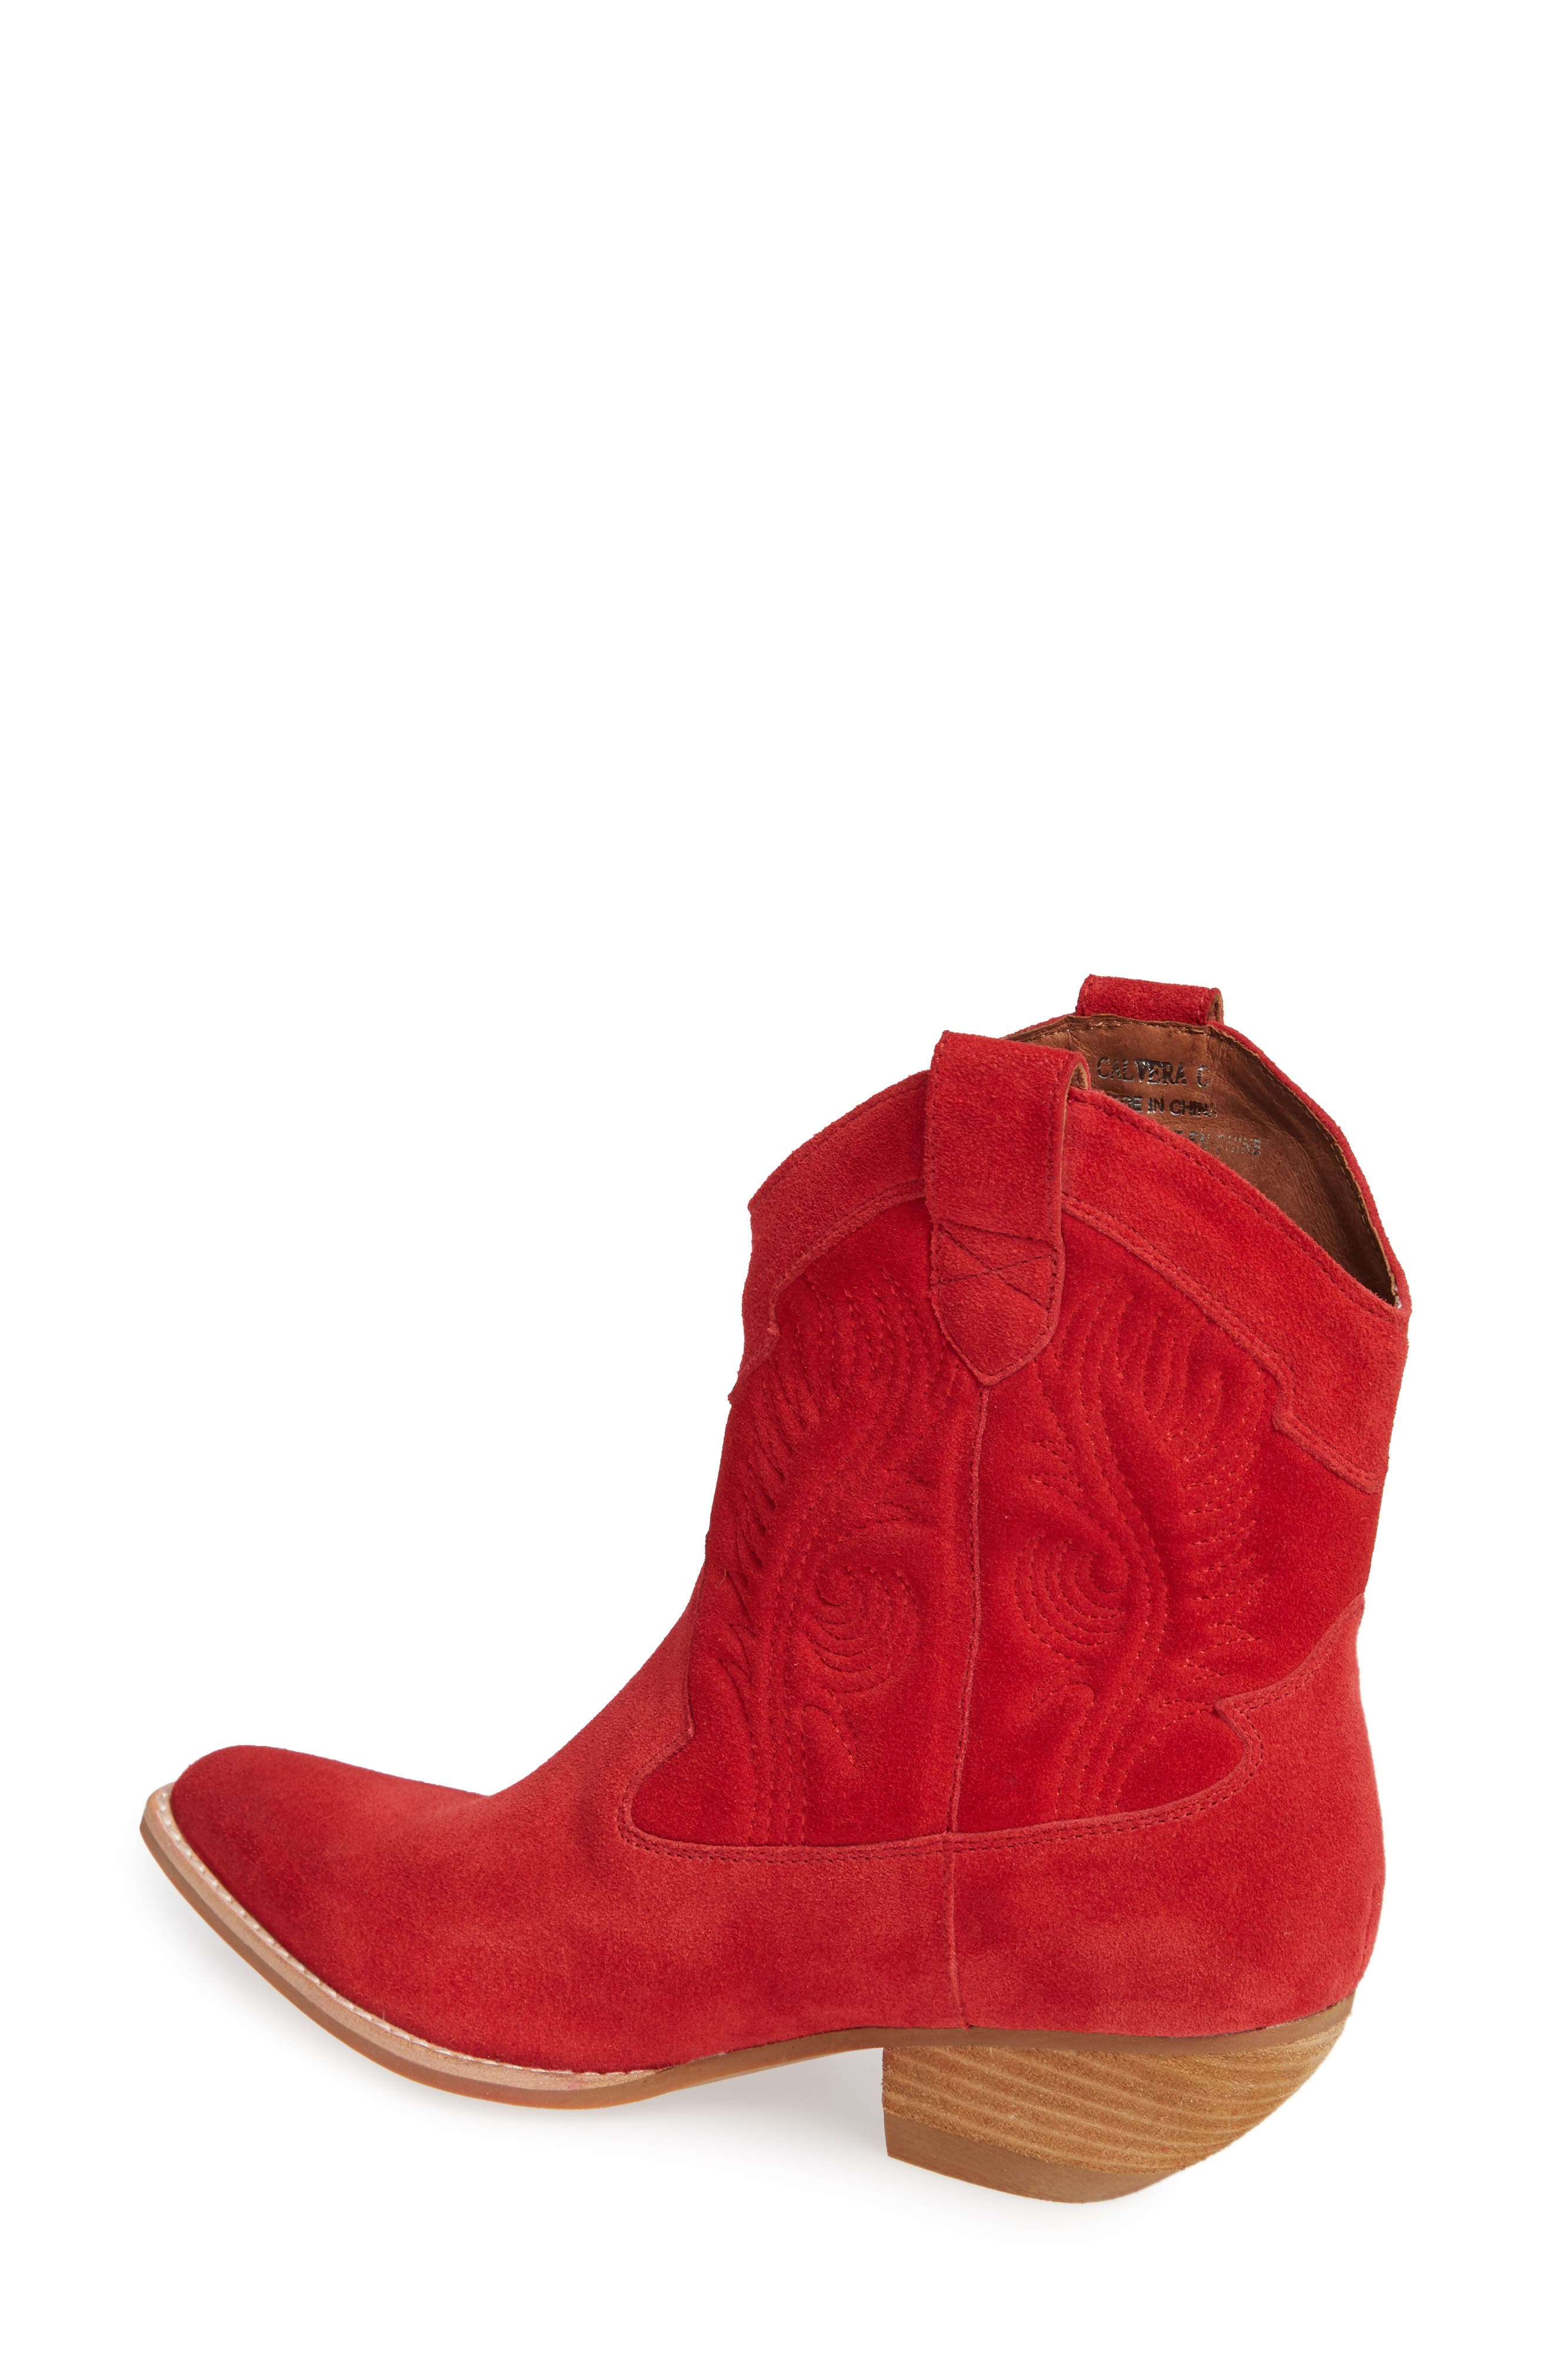 Calvera Western Boot,                             Alternate thumbnail 2, color,                             RED SUEDE